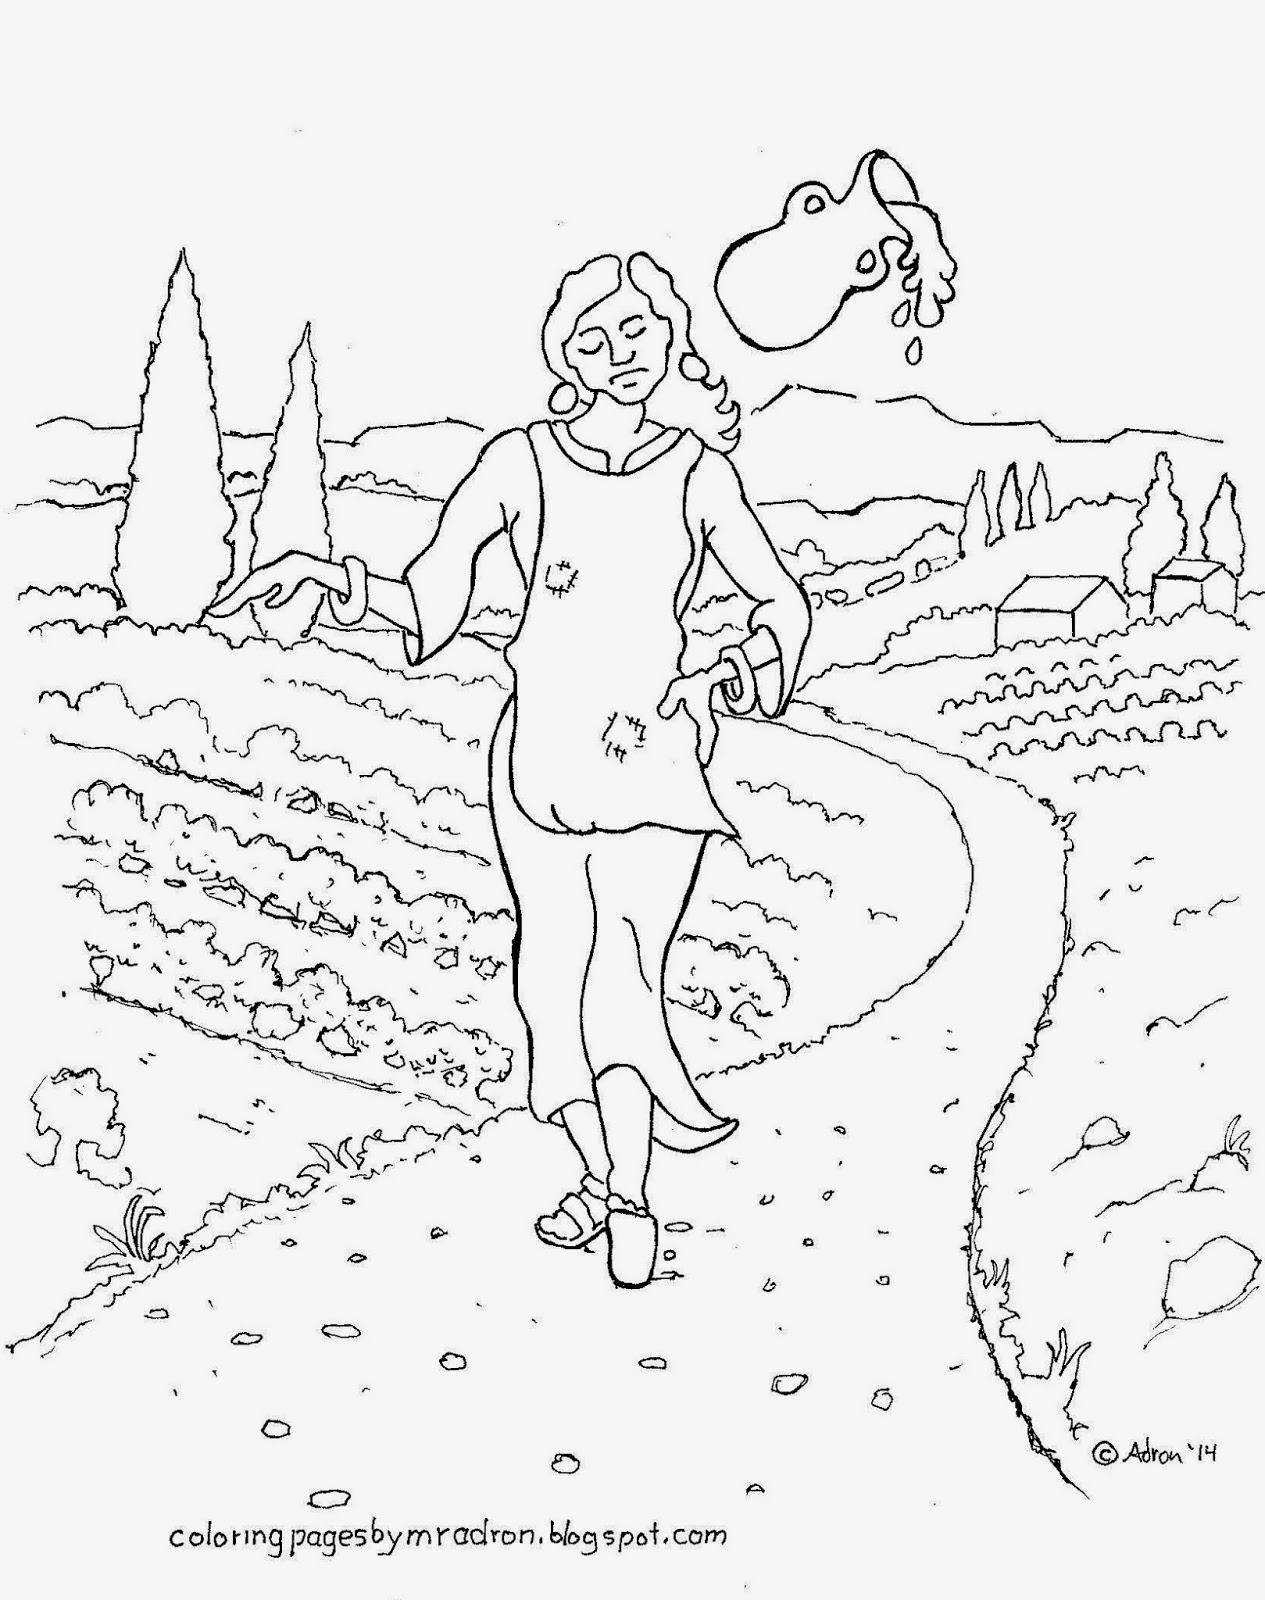 Coloring Pages for Kids by Mr. Adron: Aesop's Fable